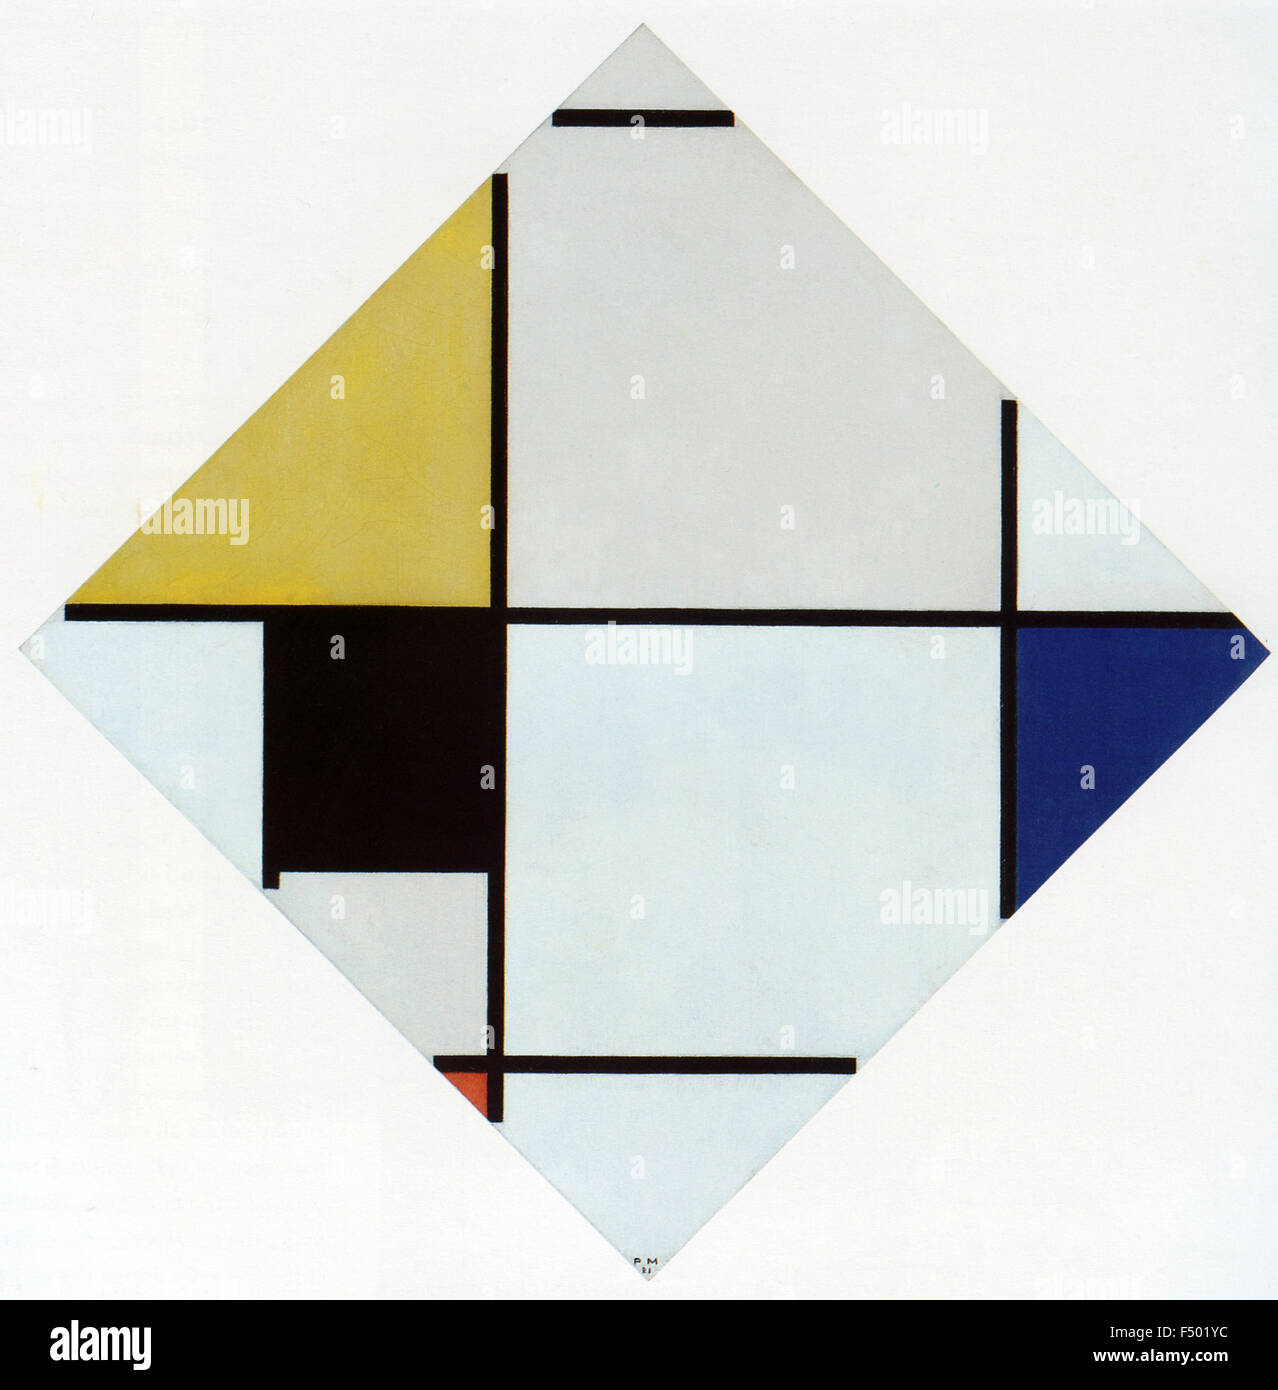 Pietr Mondrian - Lozenge Composition with Yellow, Black, Blue, Red, and Gray - Stock Image